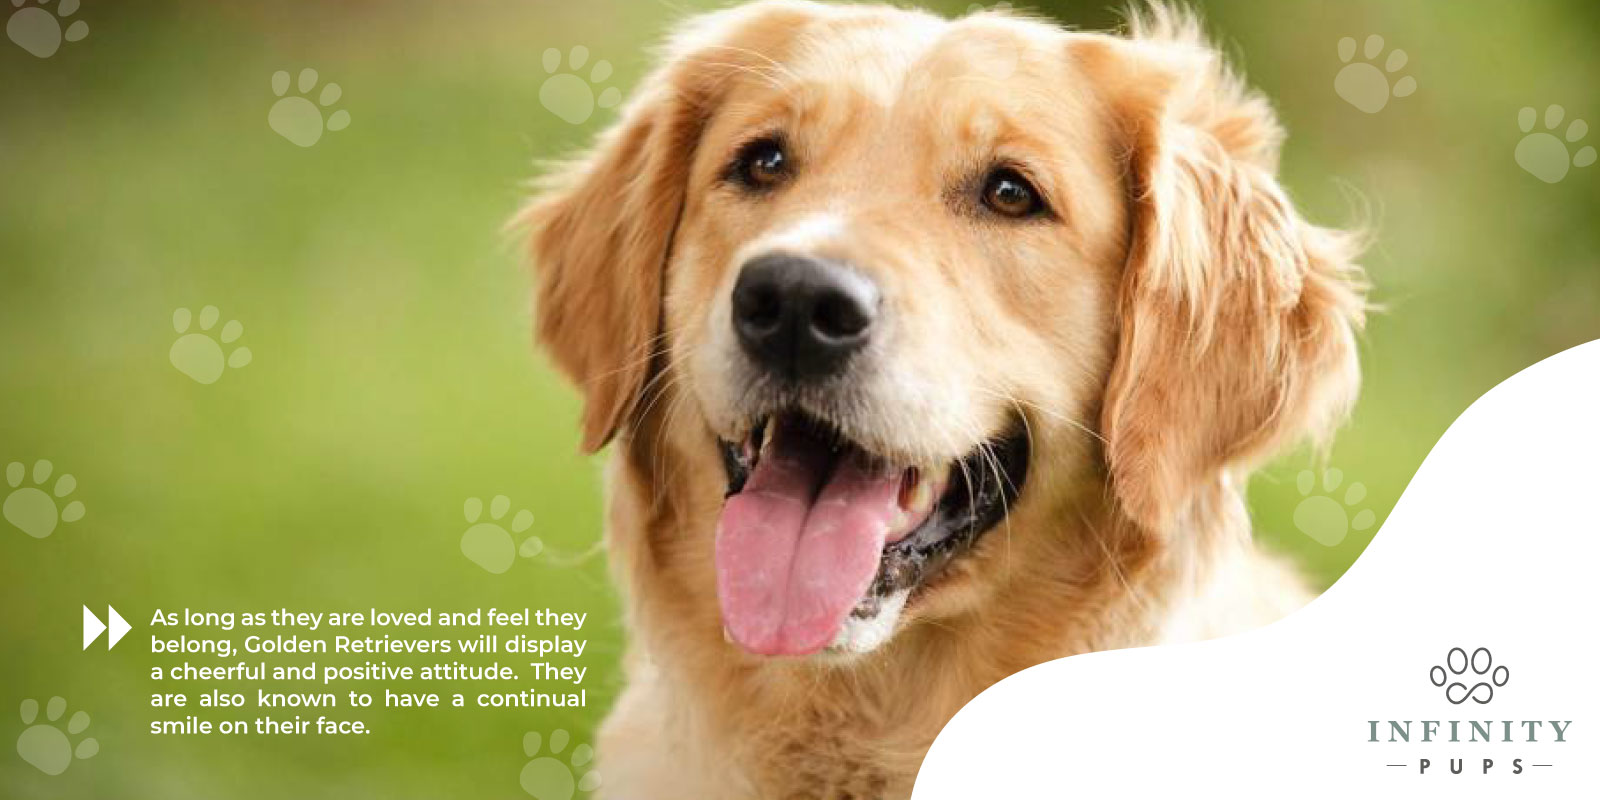 golden retrievers have a cheerful and positive attitude